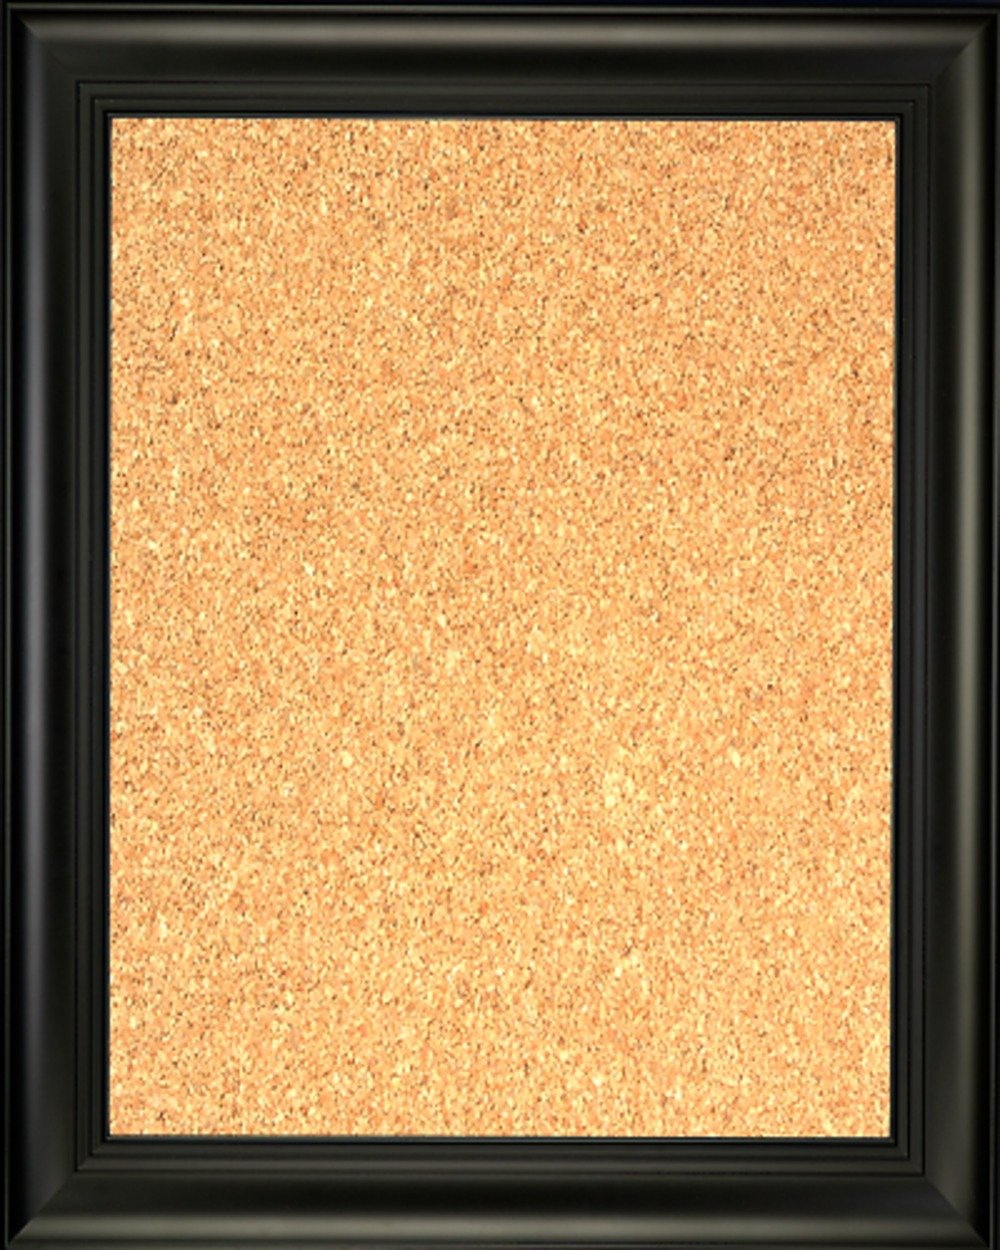 Framed Cork Board 24'' x 36'' - with Black Finish Frame with Triple Step Lip